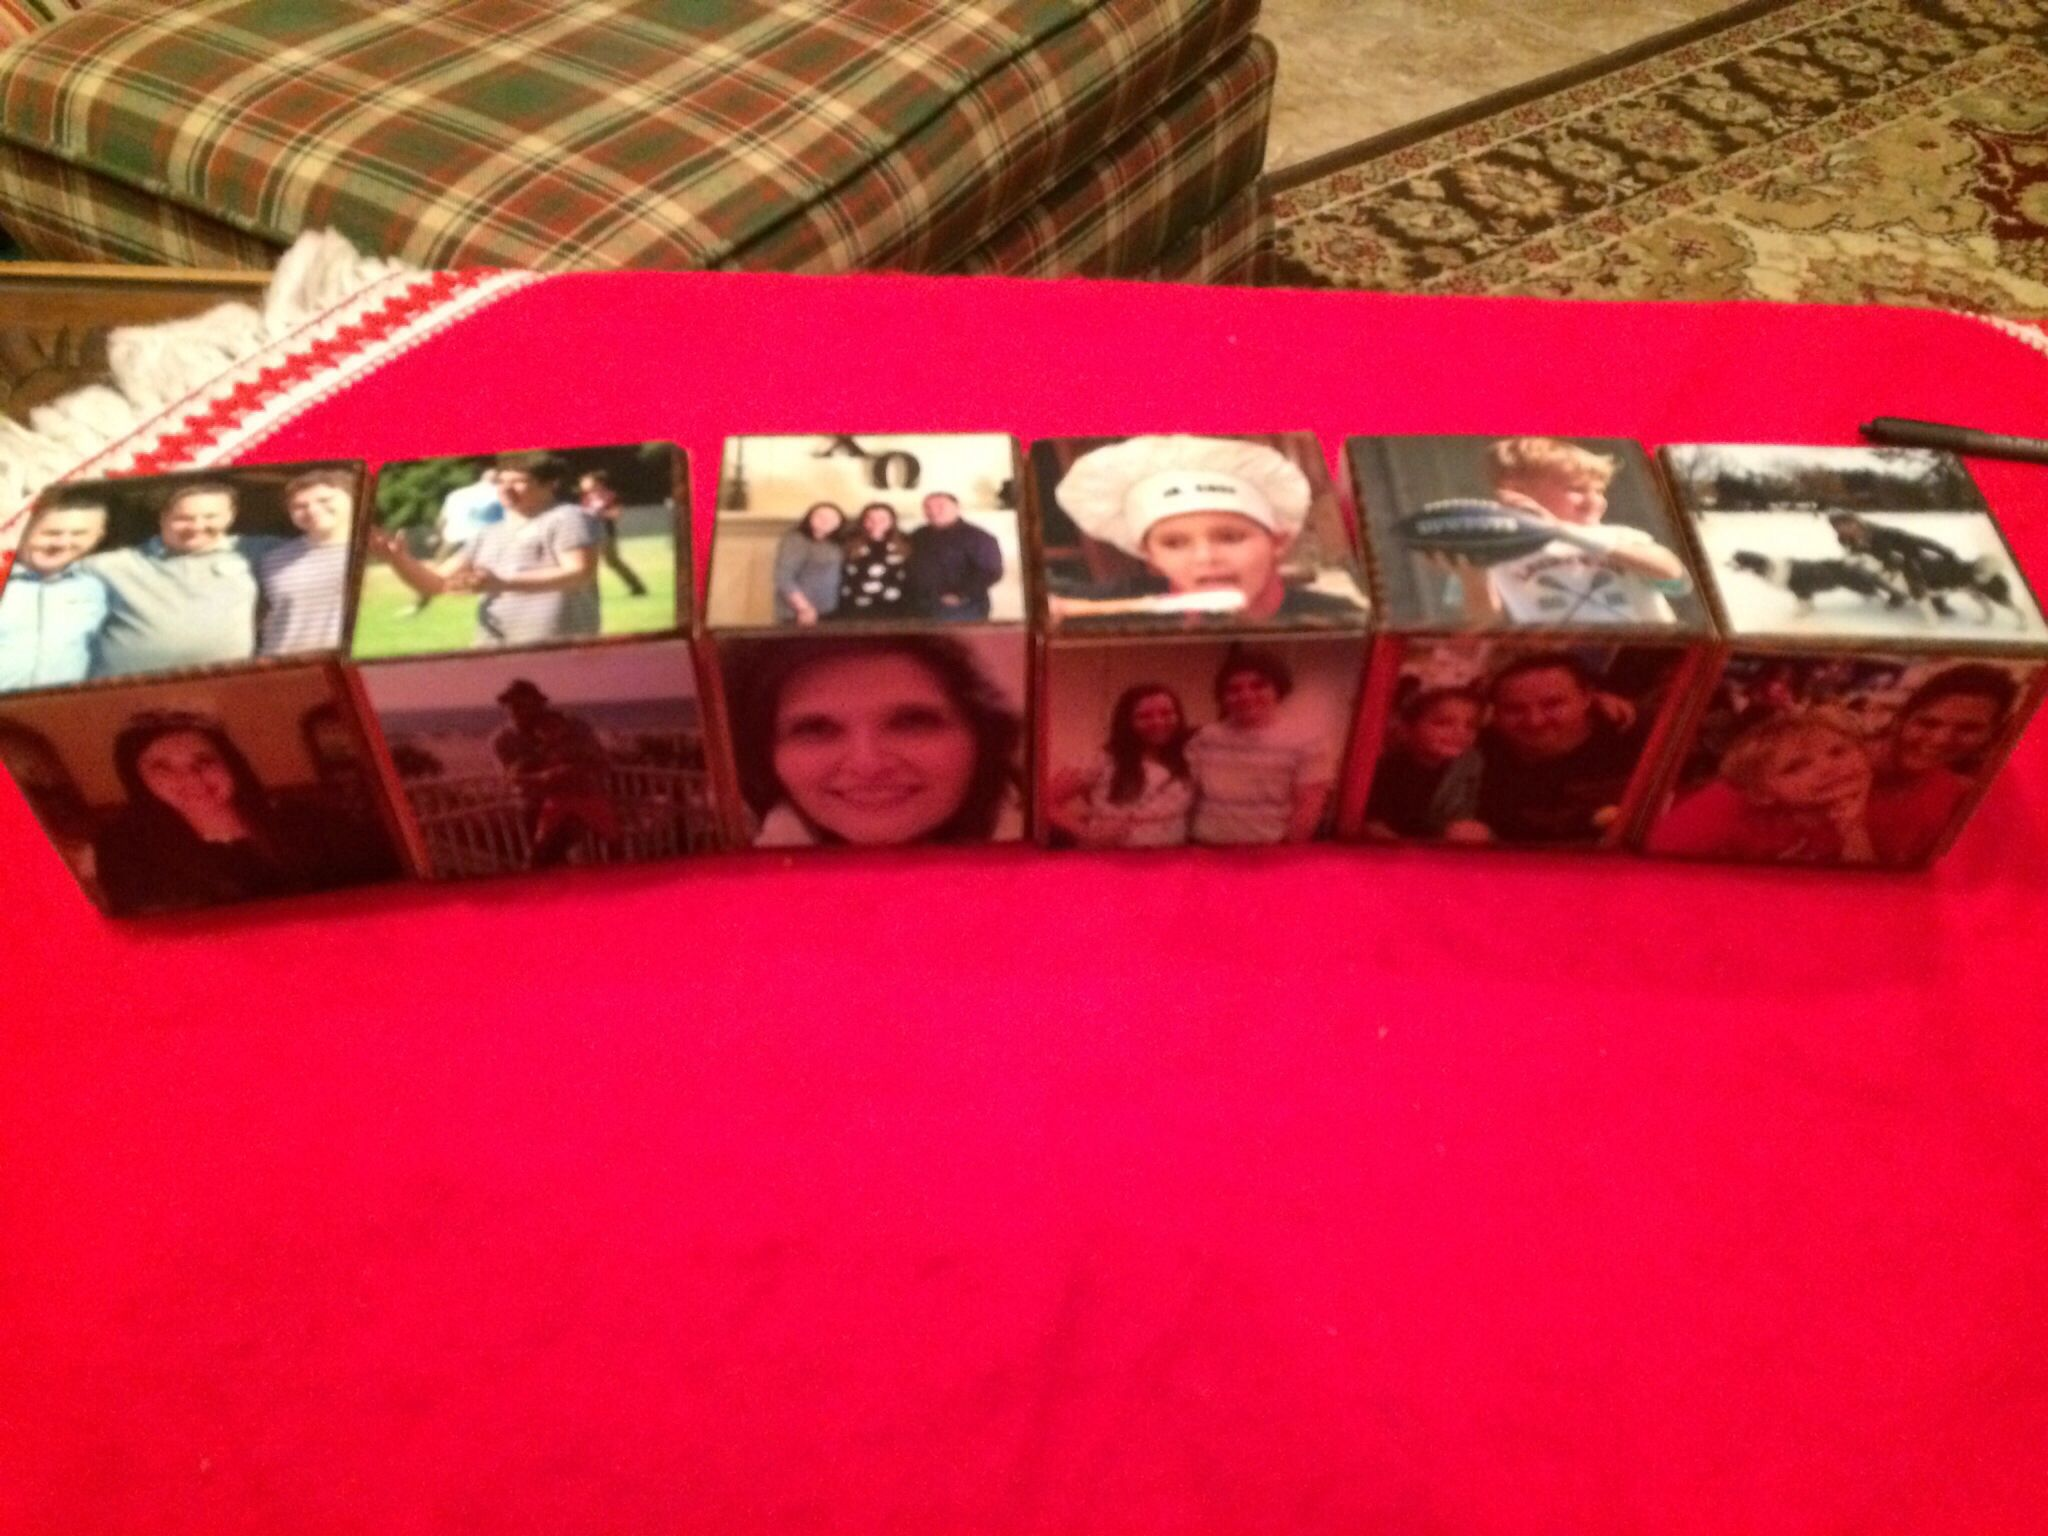 Another photo do the Photo Blocks for Christmas gift.